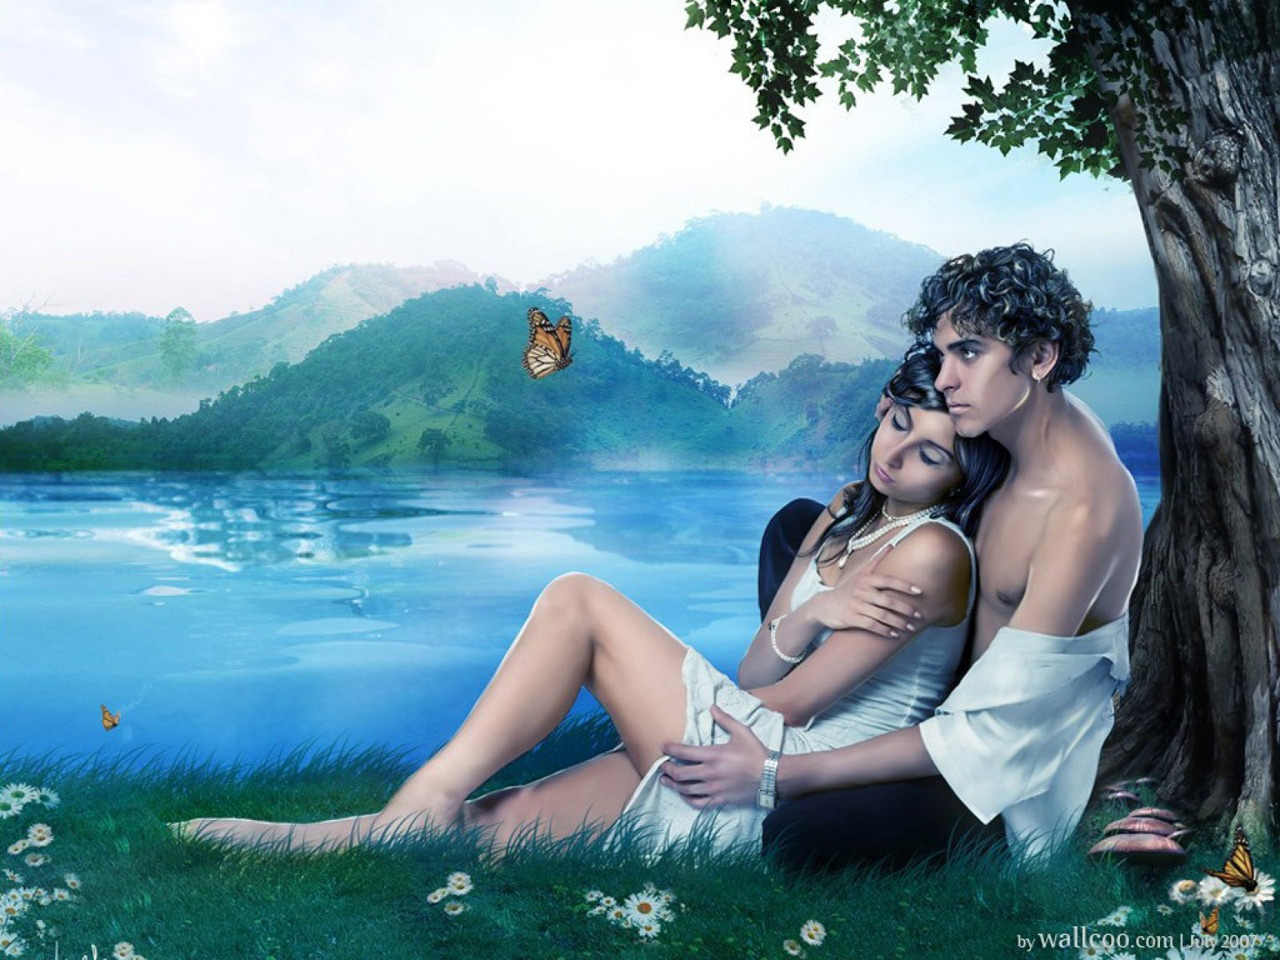 http://4.bp.blogspot.com/-YGmTwpFgFXc/Teq9PWQSfXI/AAAAAAAAC9I/xC_yJsb_vOw/s1600/The_Purity_of_Love_freecomputerdesktopwallpaper_1280.jpg